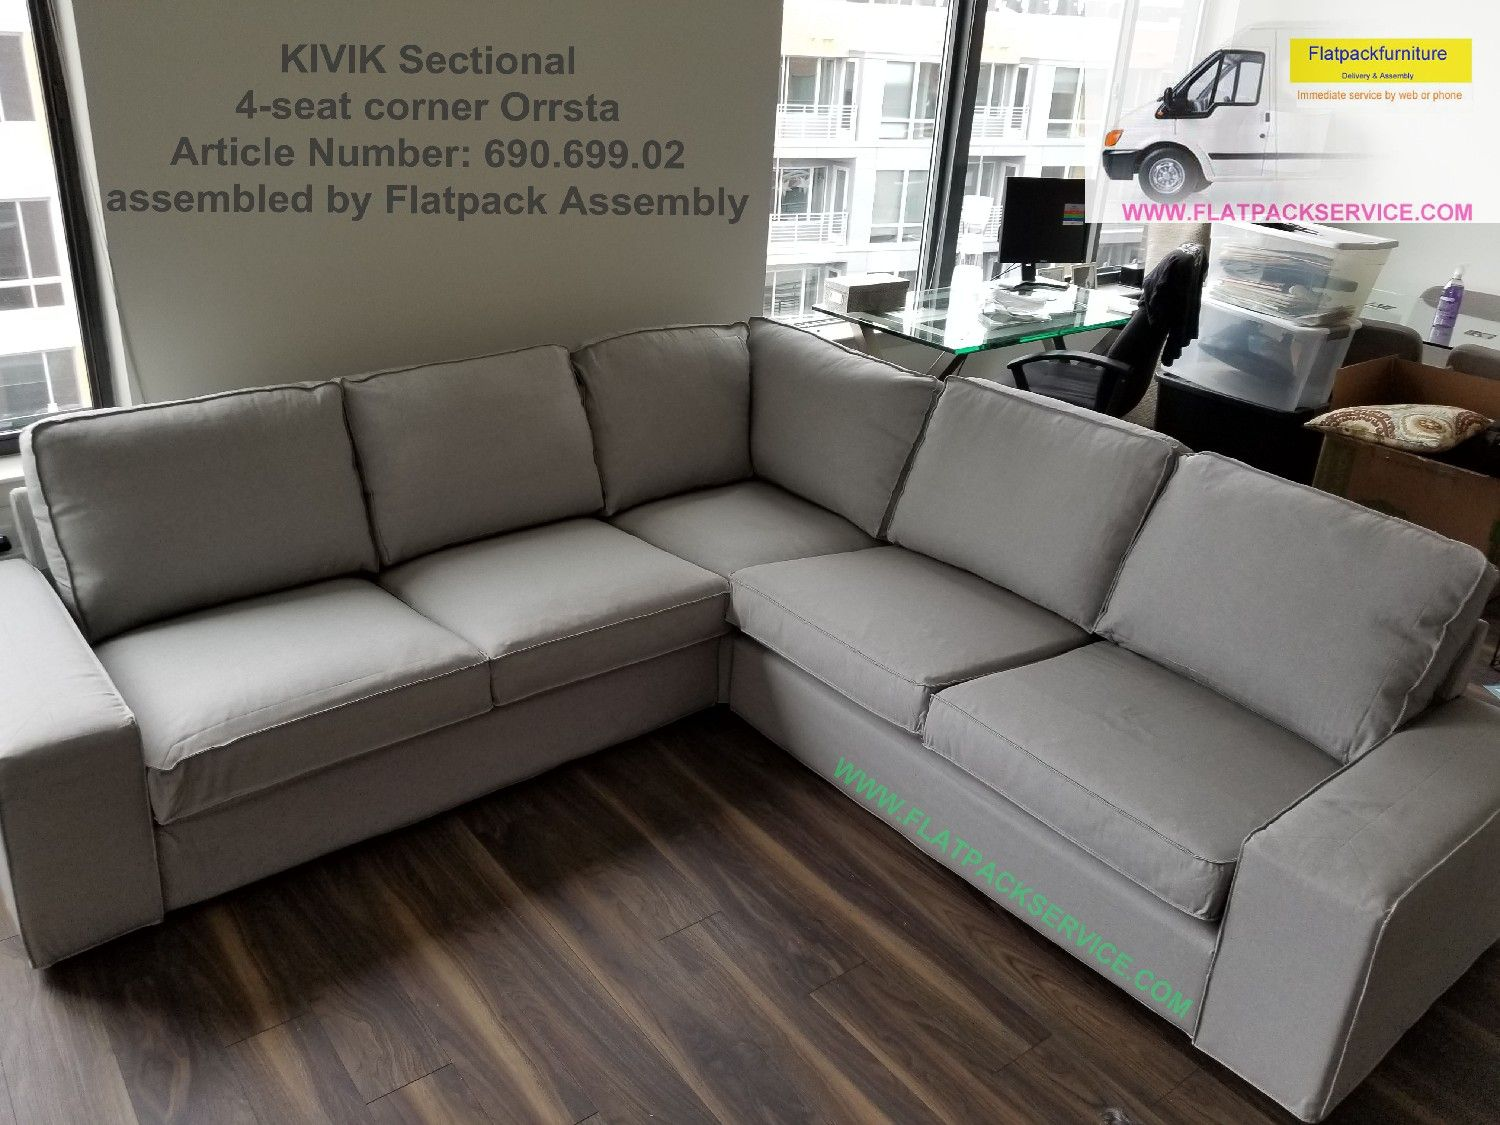 Kivik Sofa Pdf Kivik Sofa Manual Awesome Home